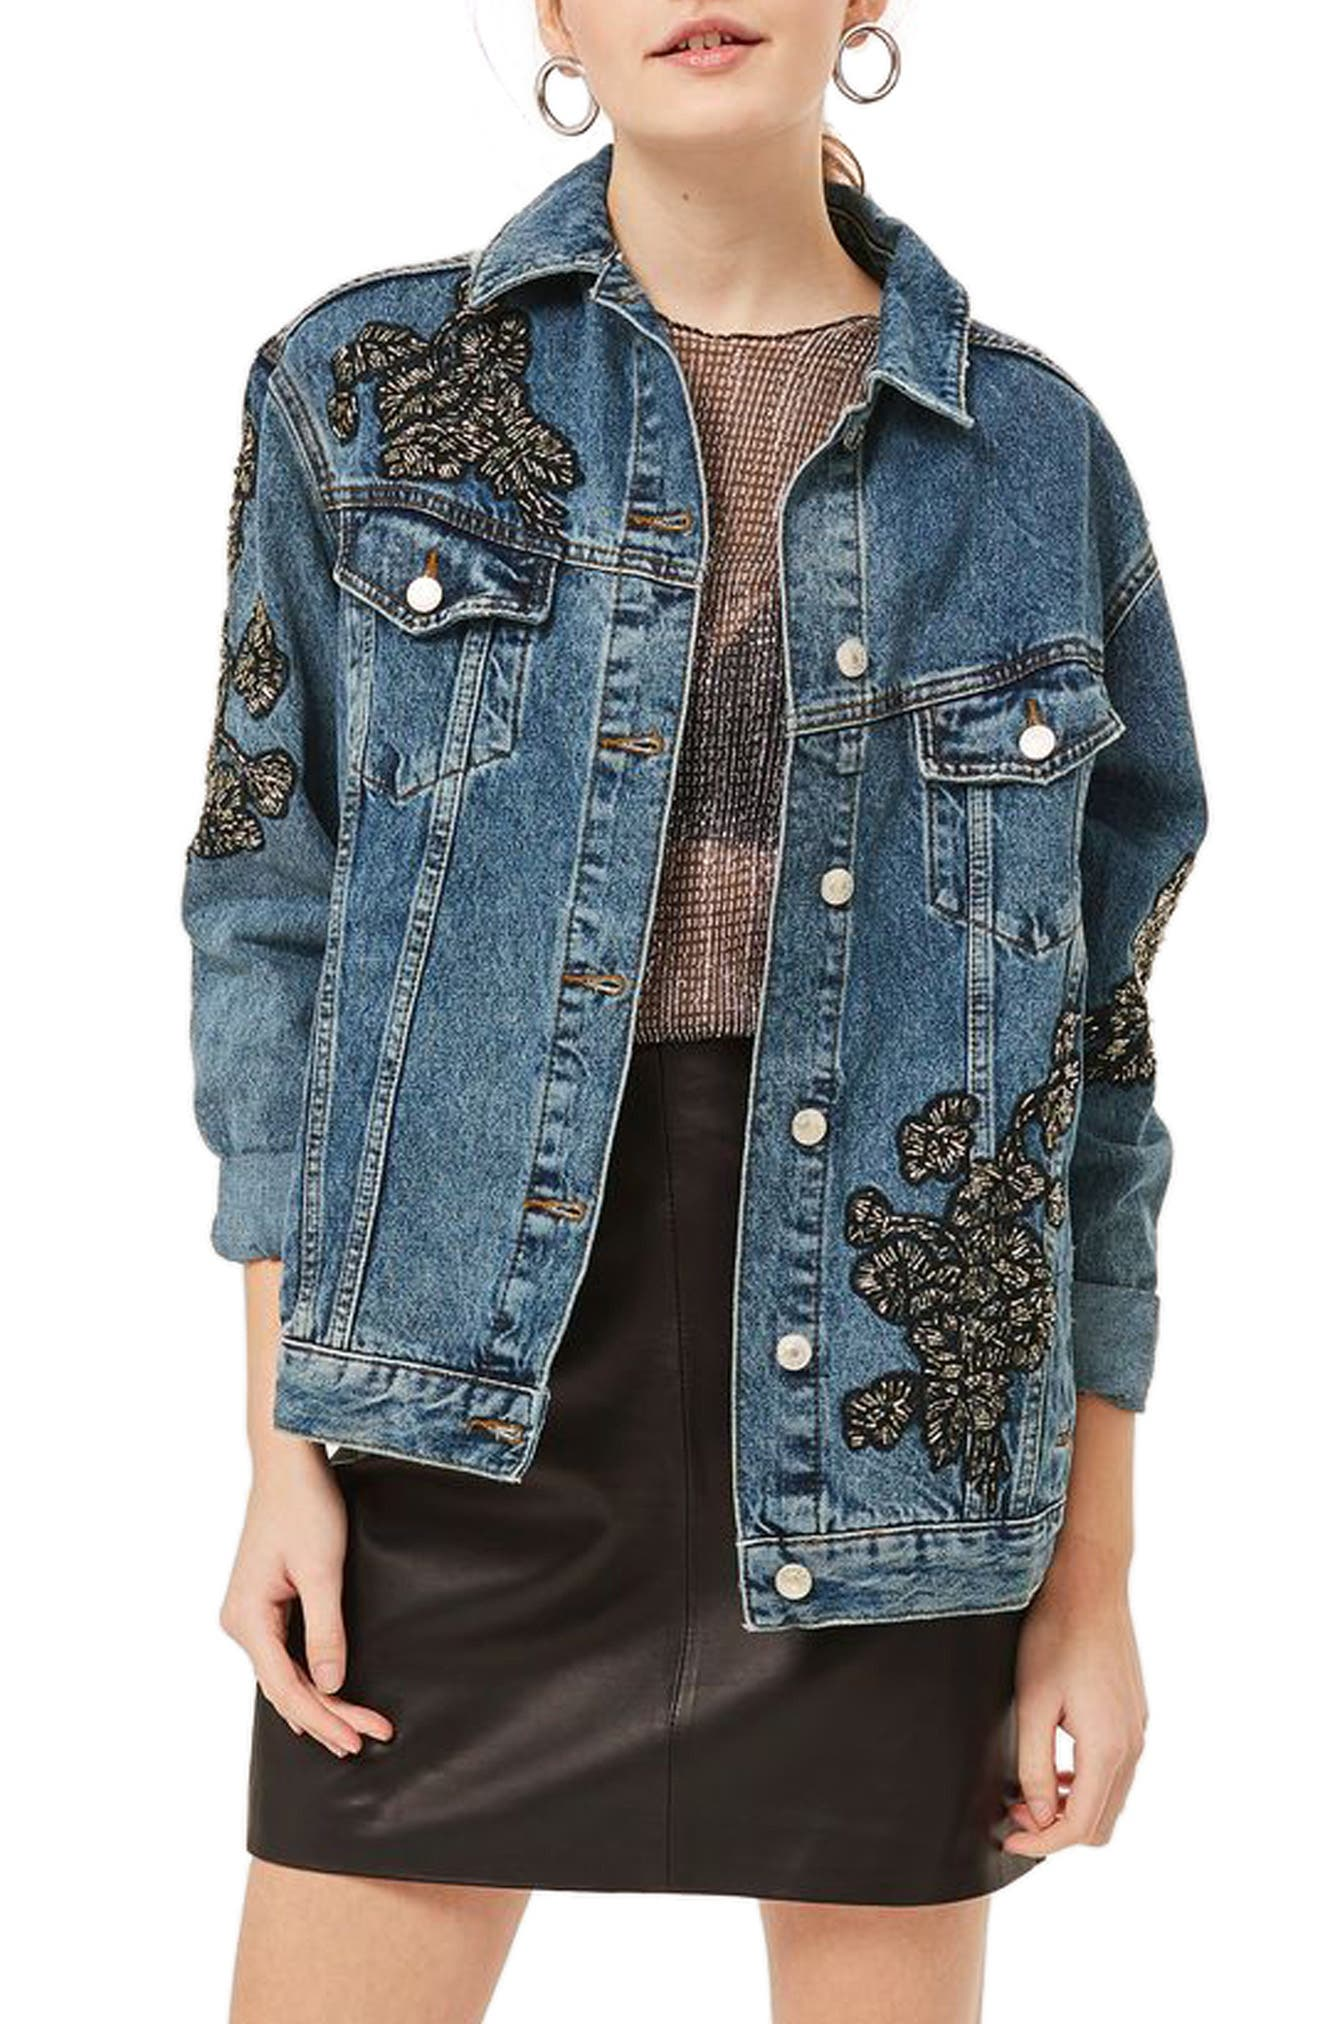 Topshop Embellished Denim Jacket